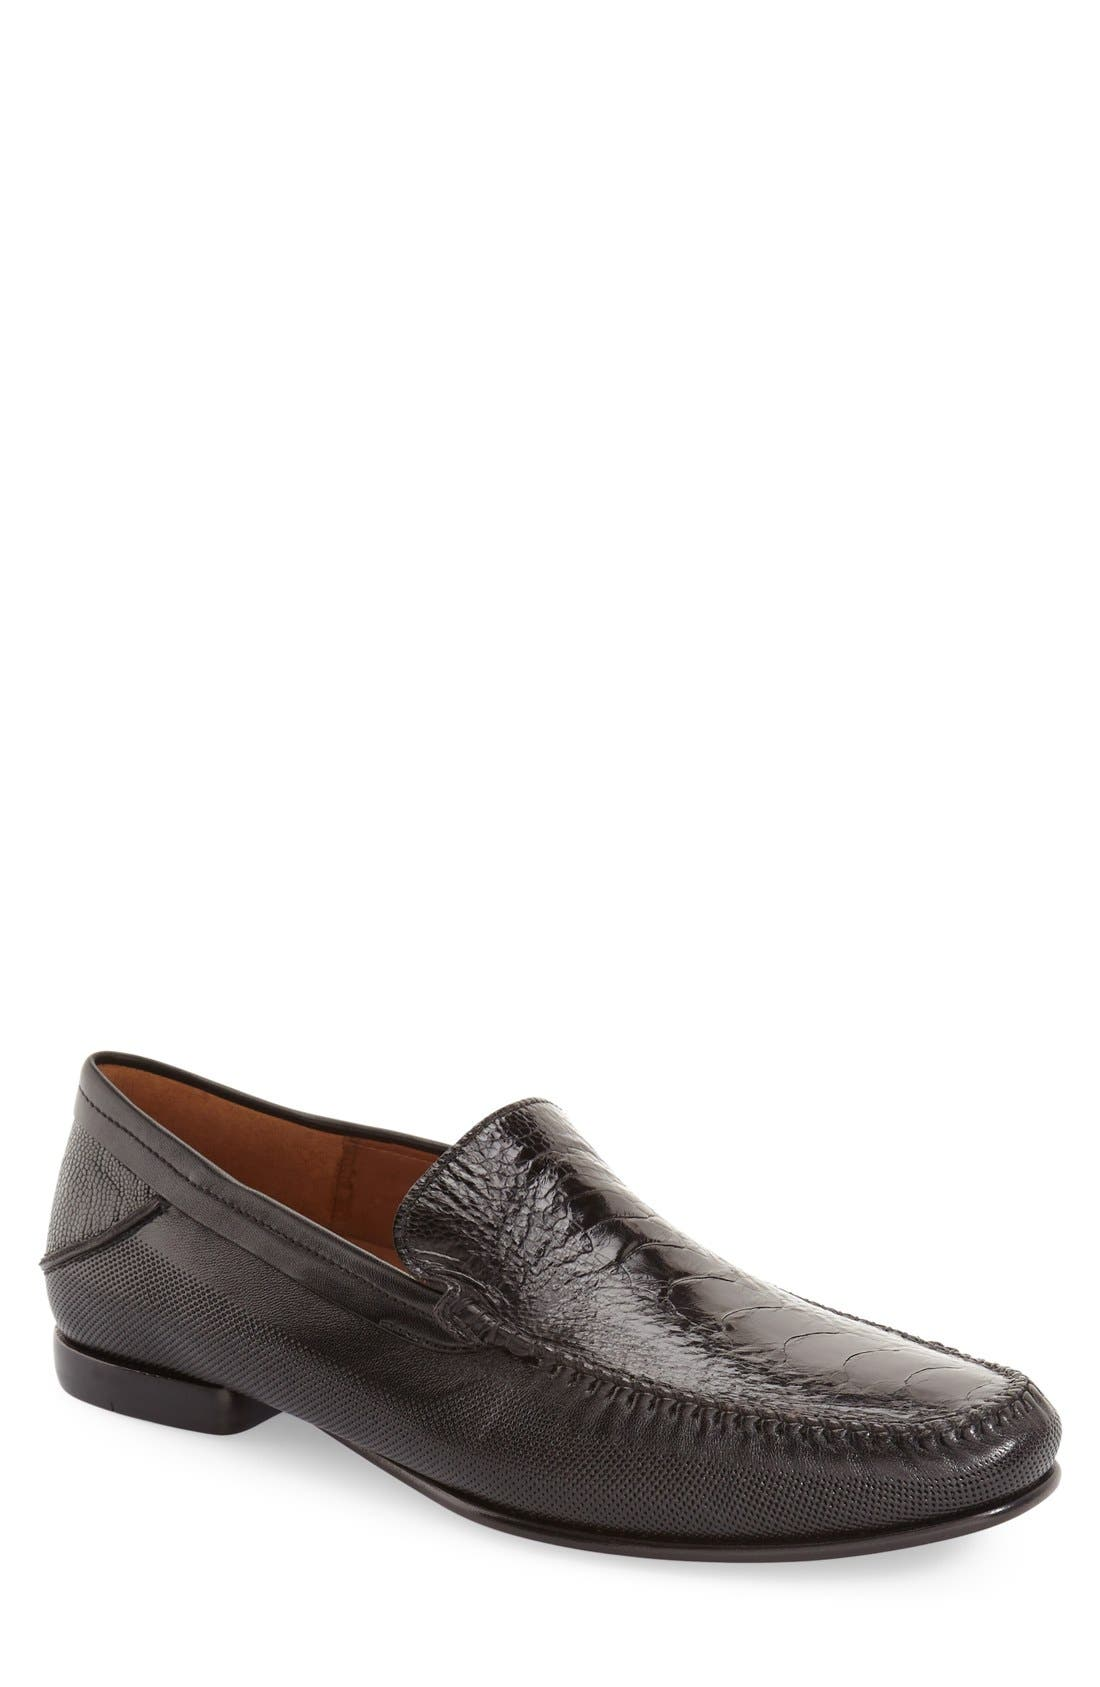 Main Image - Mezlan 'Romero' Loafer (Men)